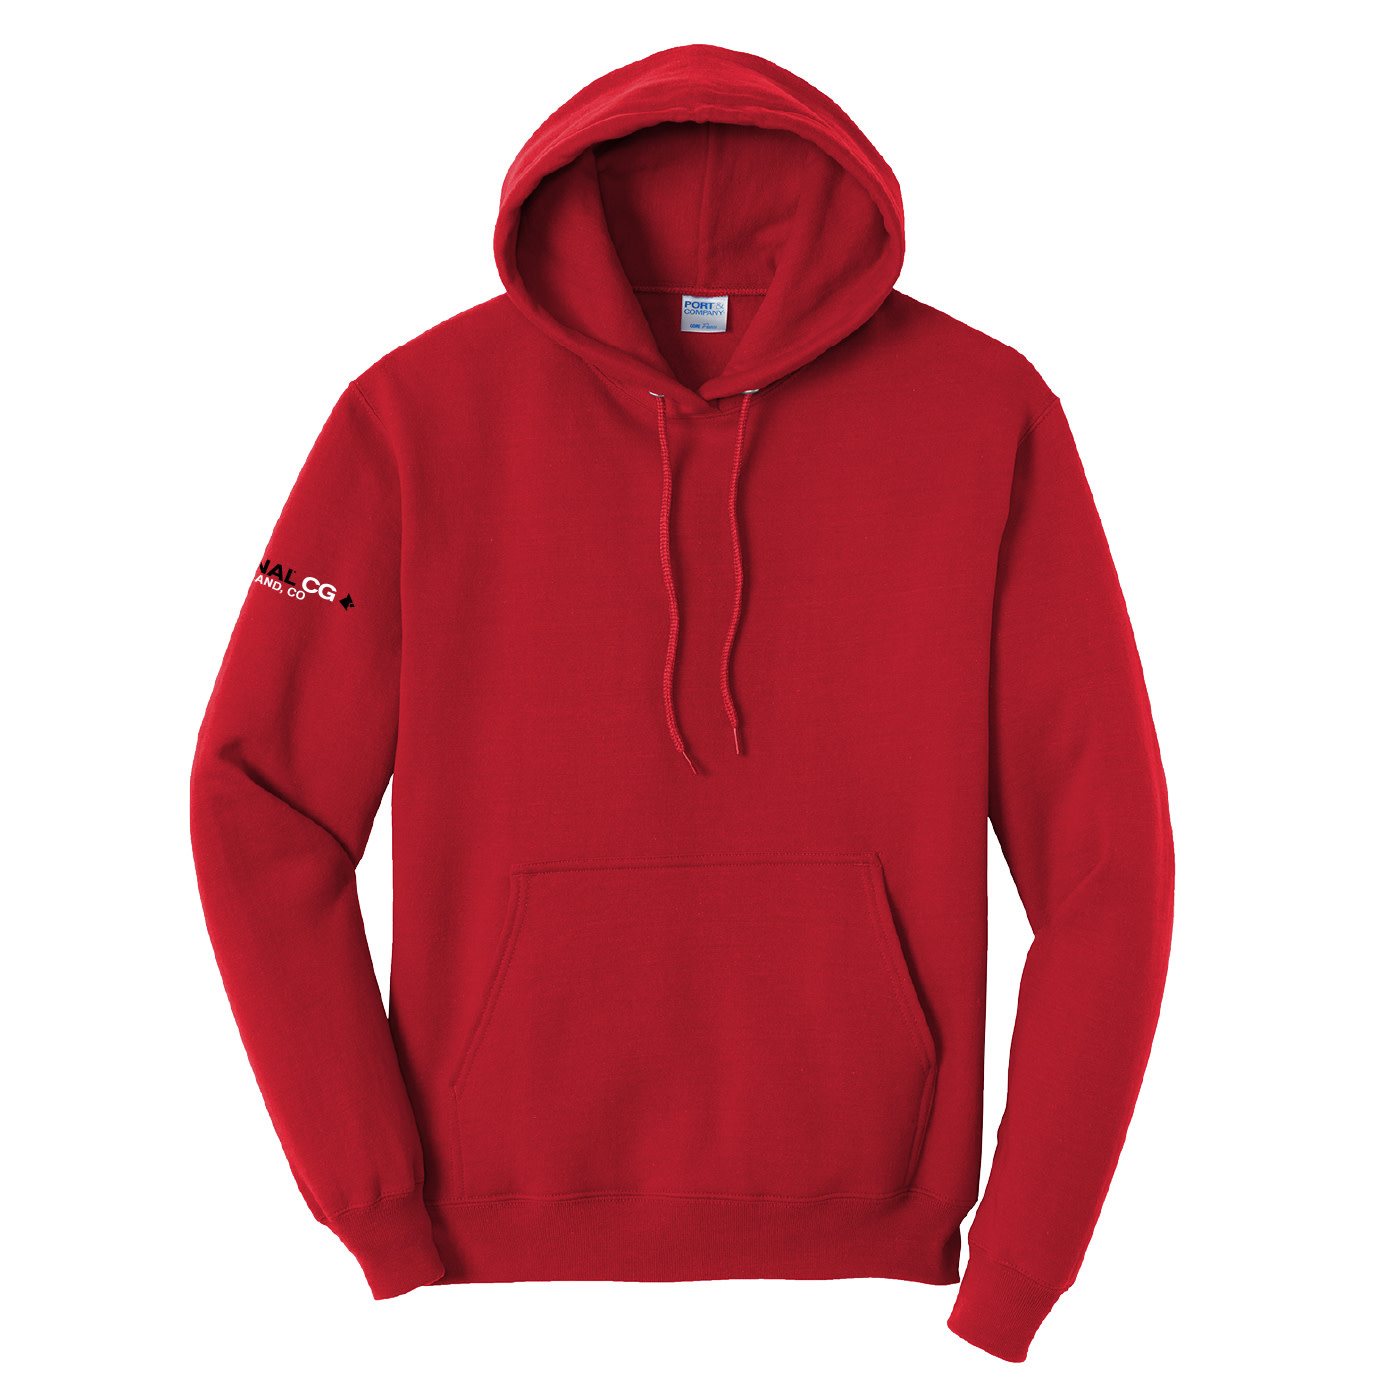 Port Authority Port & Company Tall Core Fleece Pullover Hooded Sweatshirt (Red)